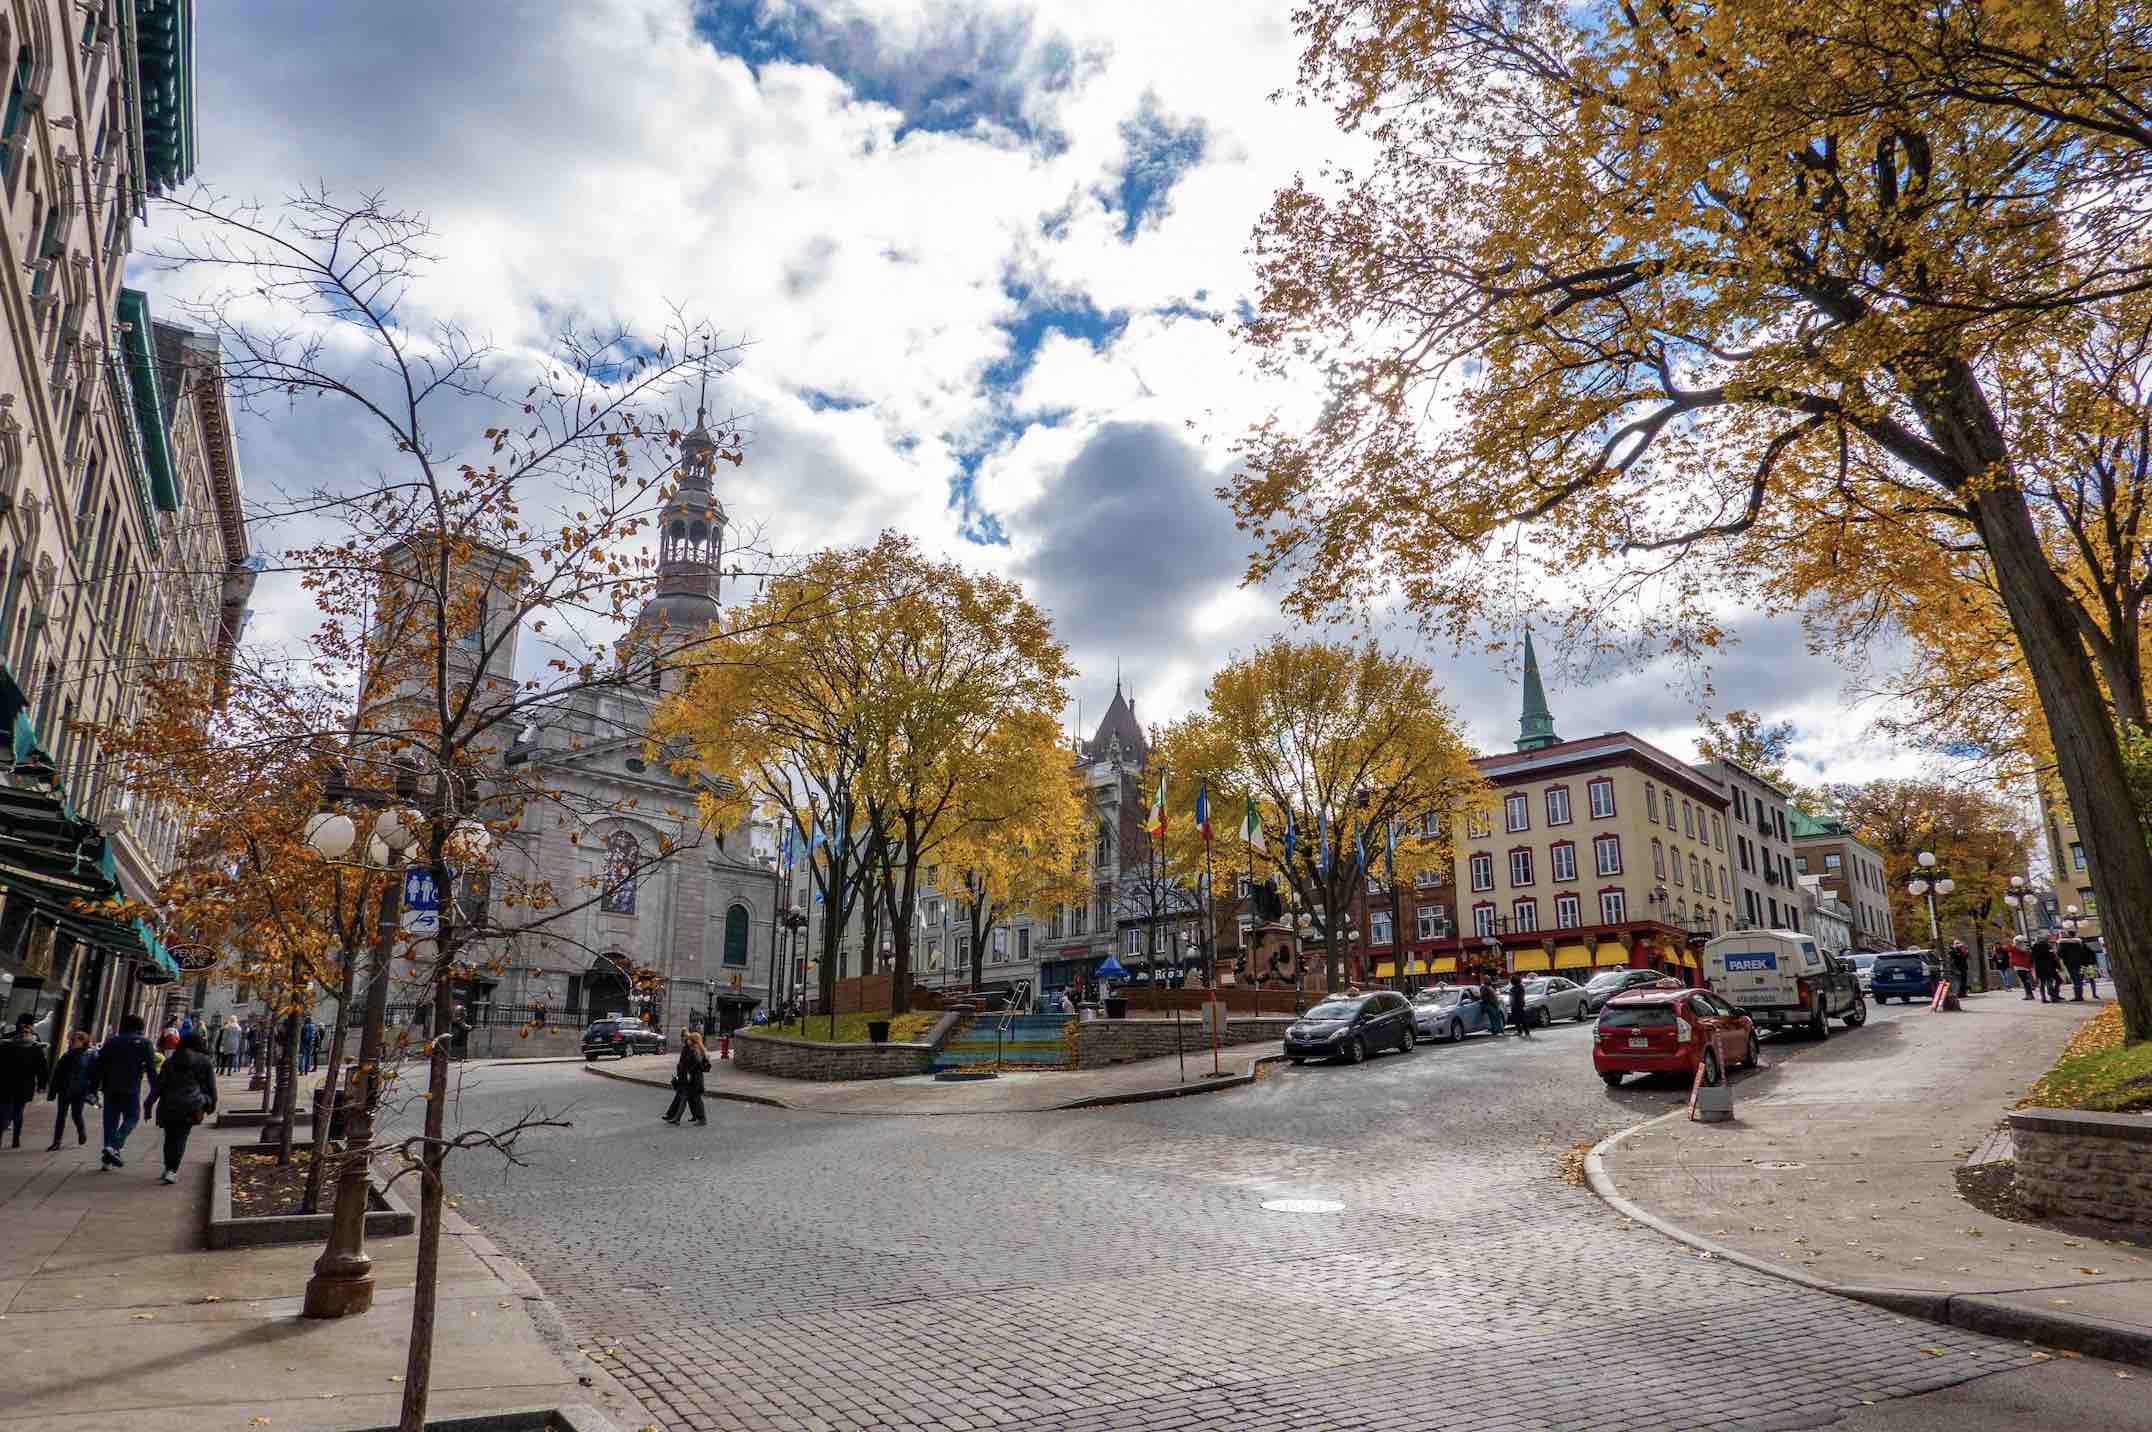 Walking tour nathalia-things to do in old Quebec City cobbled street and city square copy